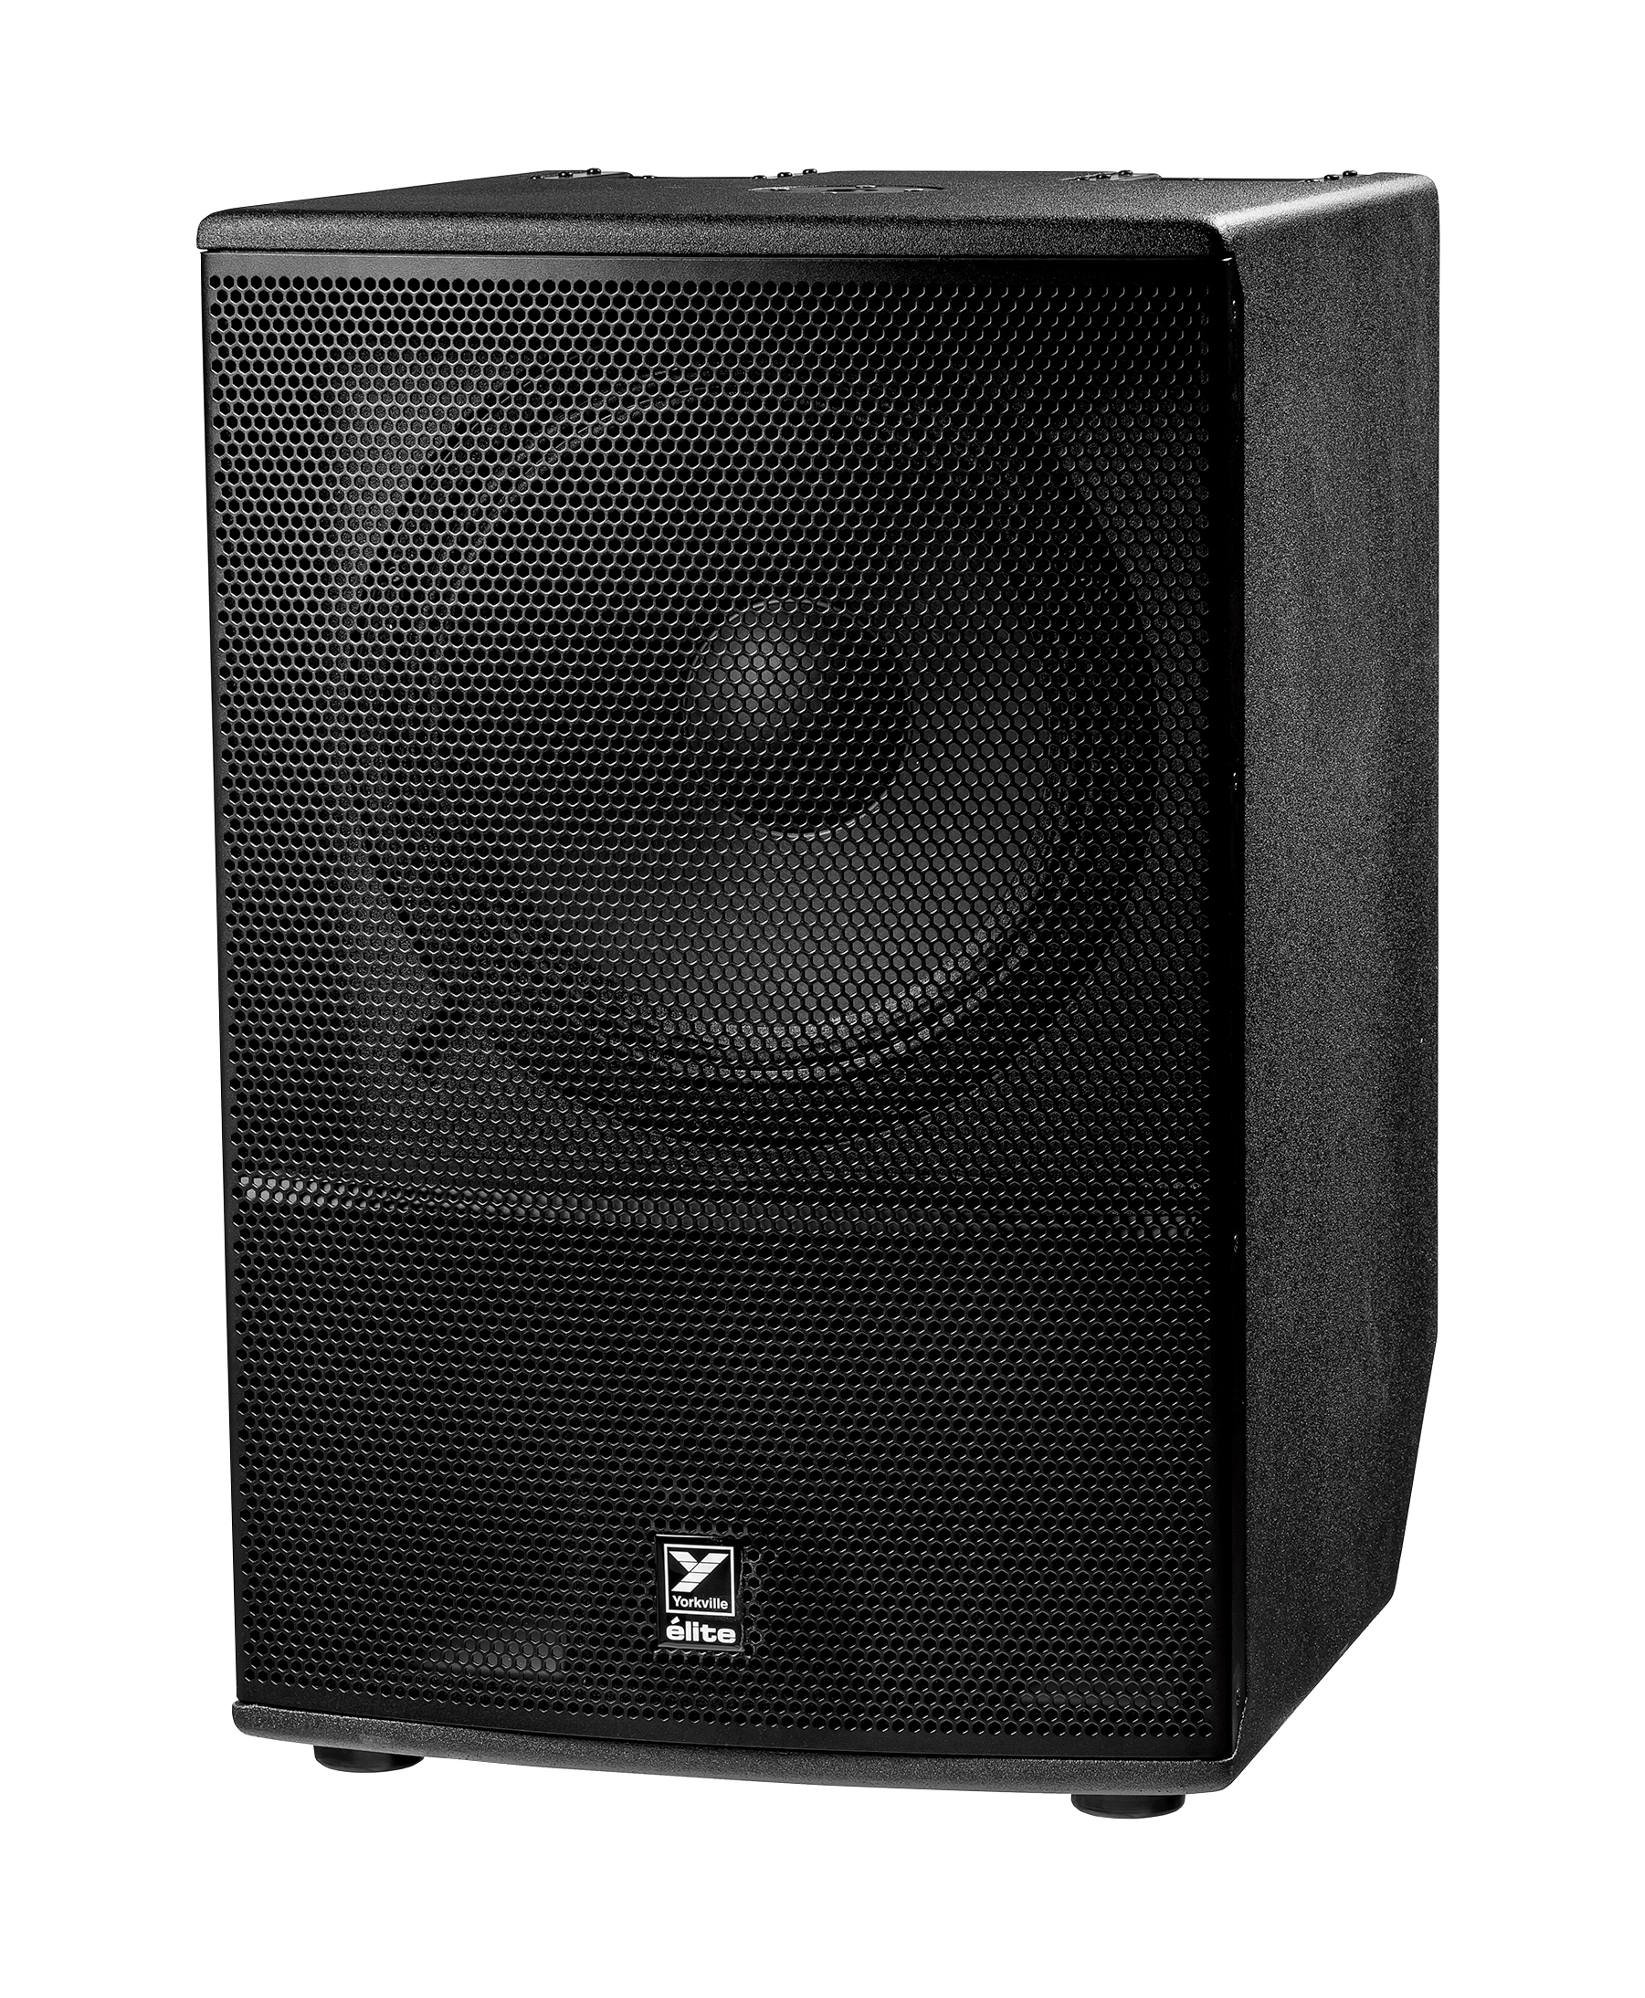 "1600W, 1x 18"" Powered Subwoofer"